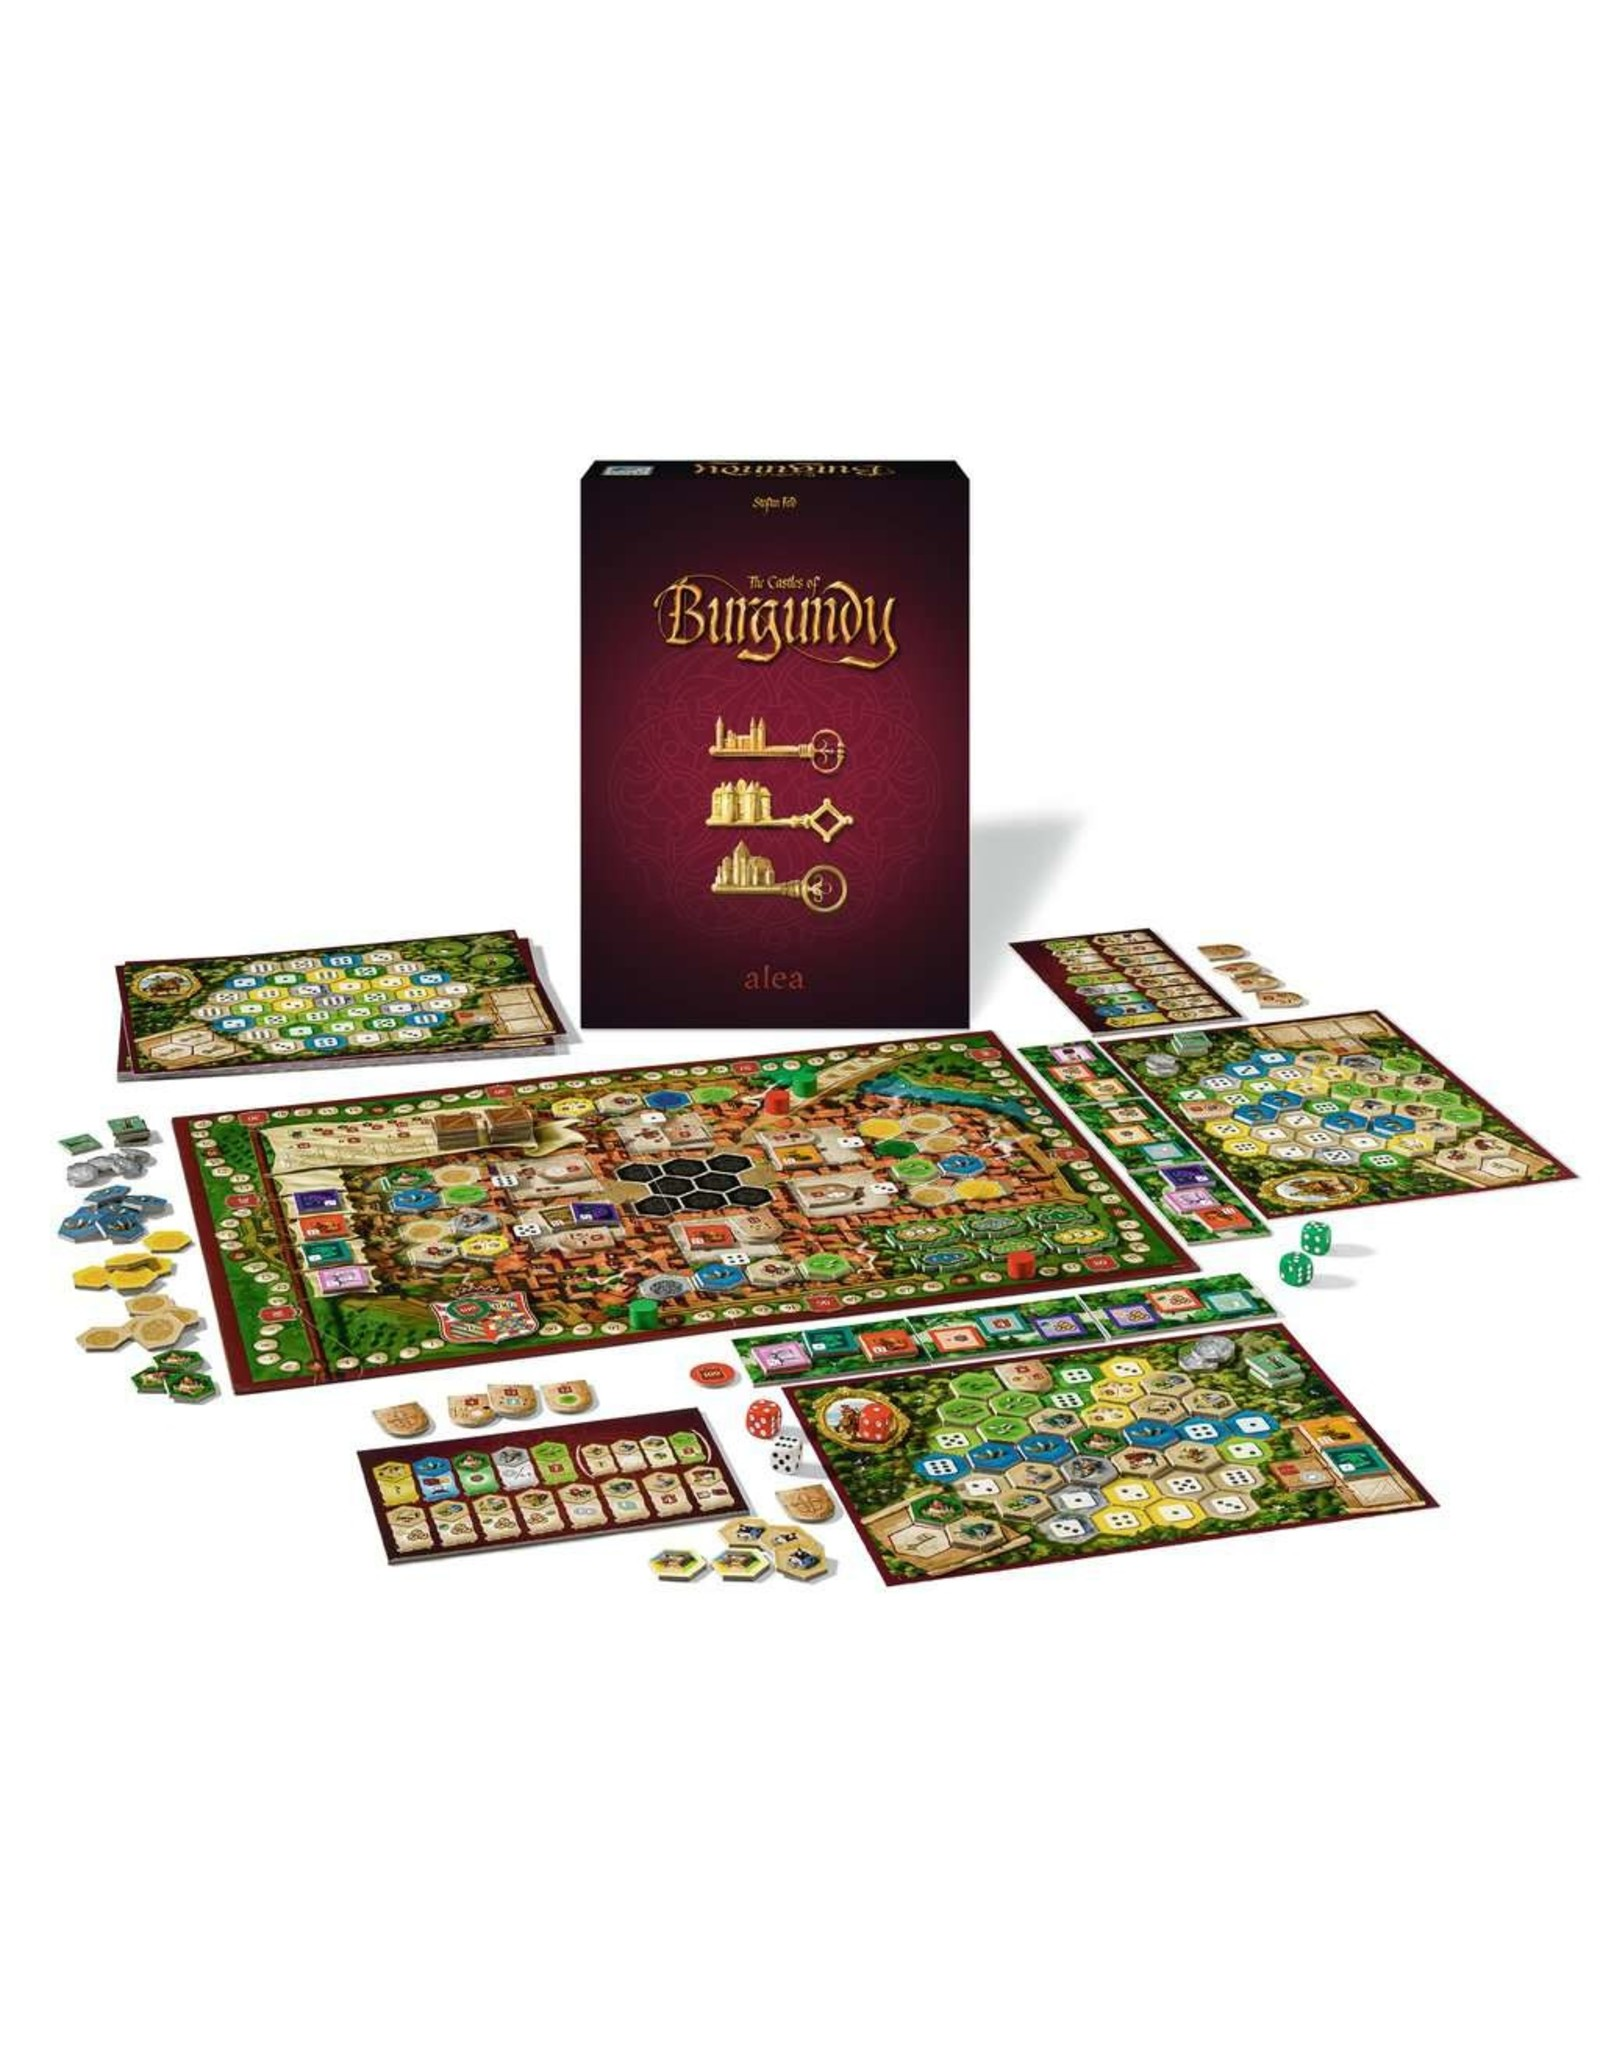 Ravensburger The Castles of Burgundy 20th Anniversary Edition